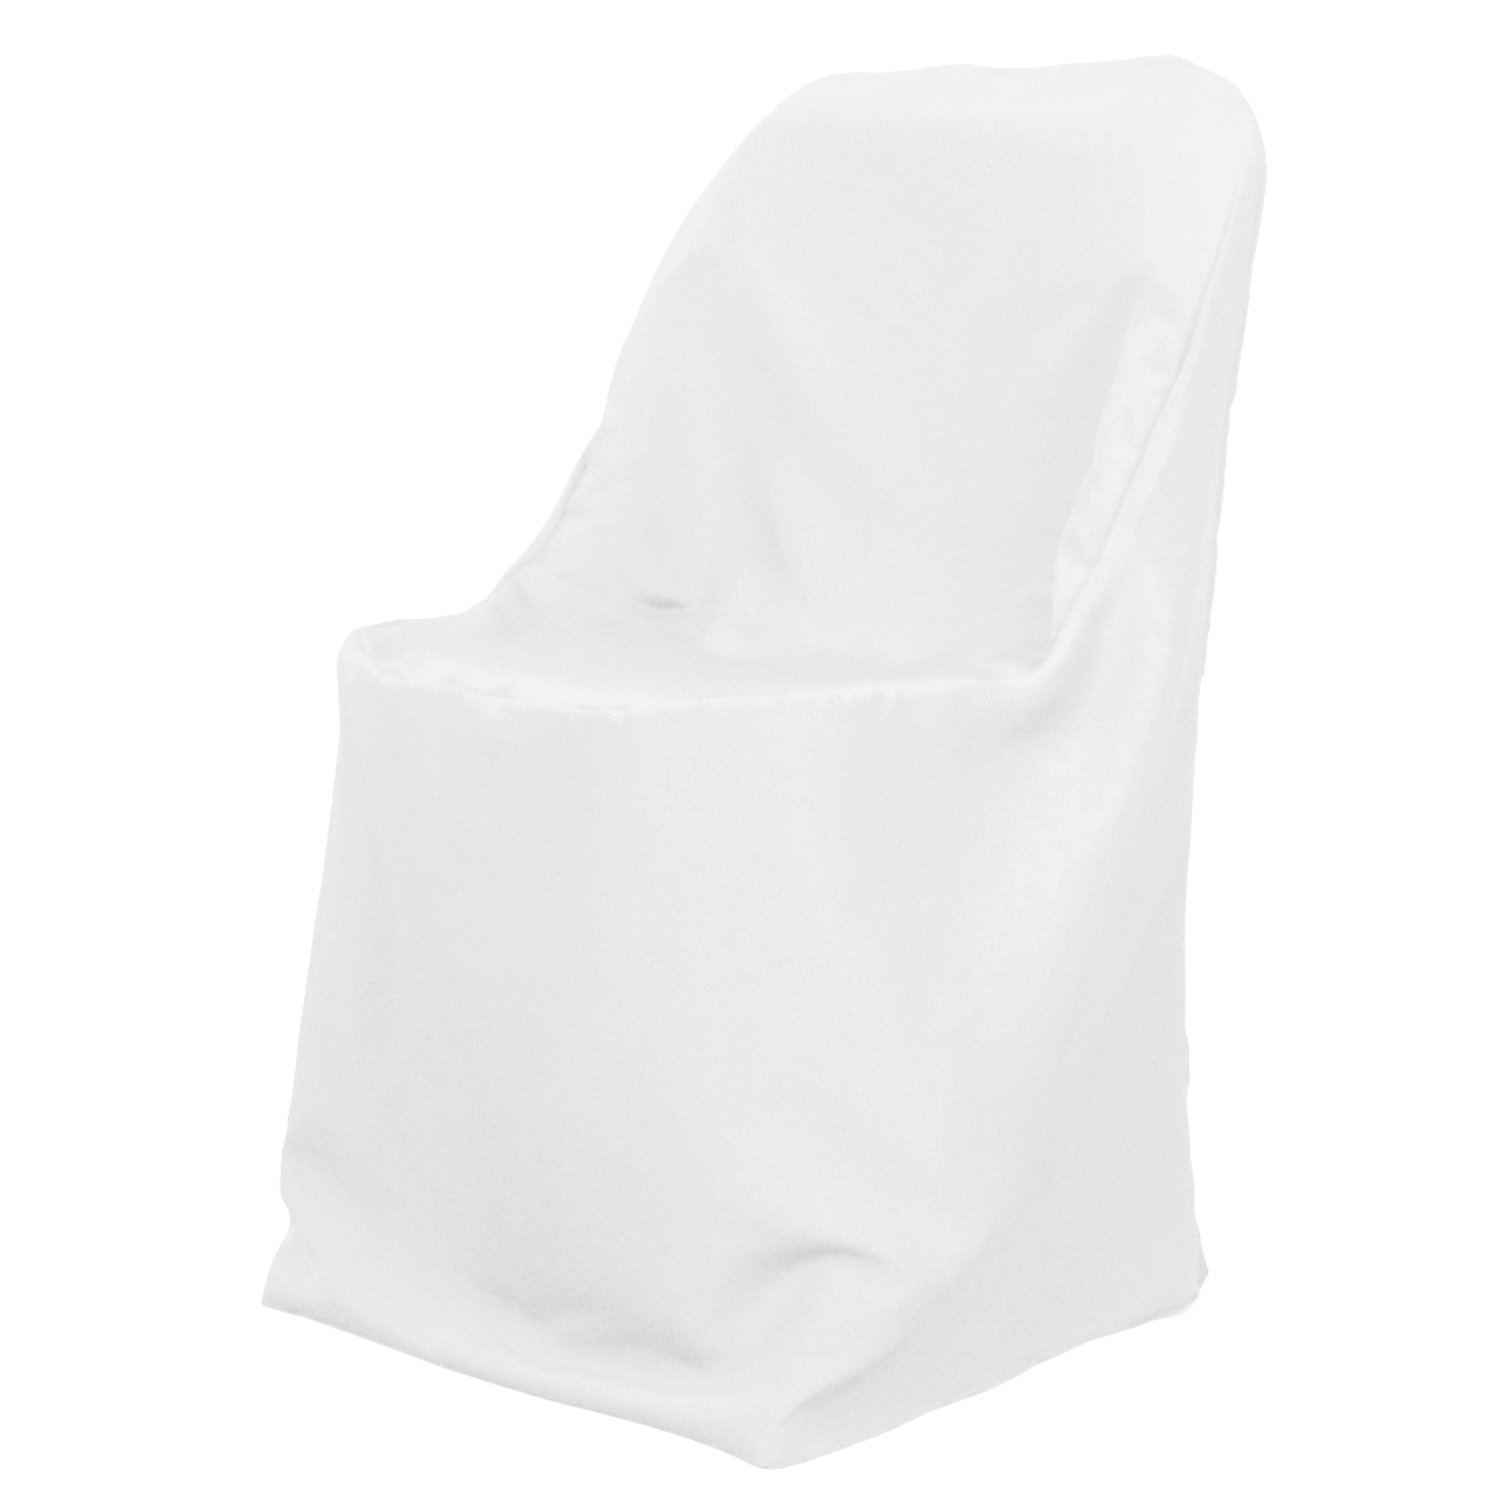 White Wedding Reception Folding Style Chair Covers (set of 10) by All in One Weddings